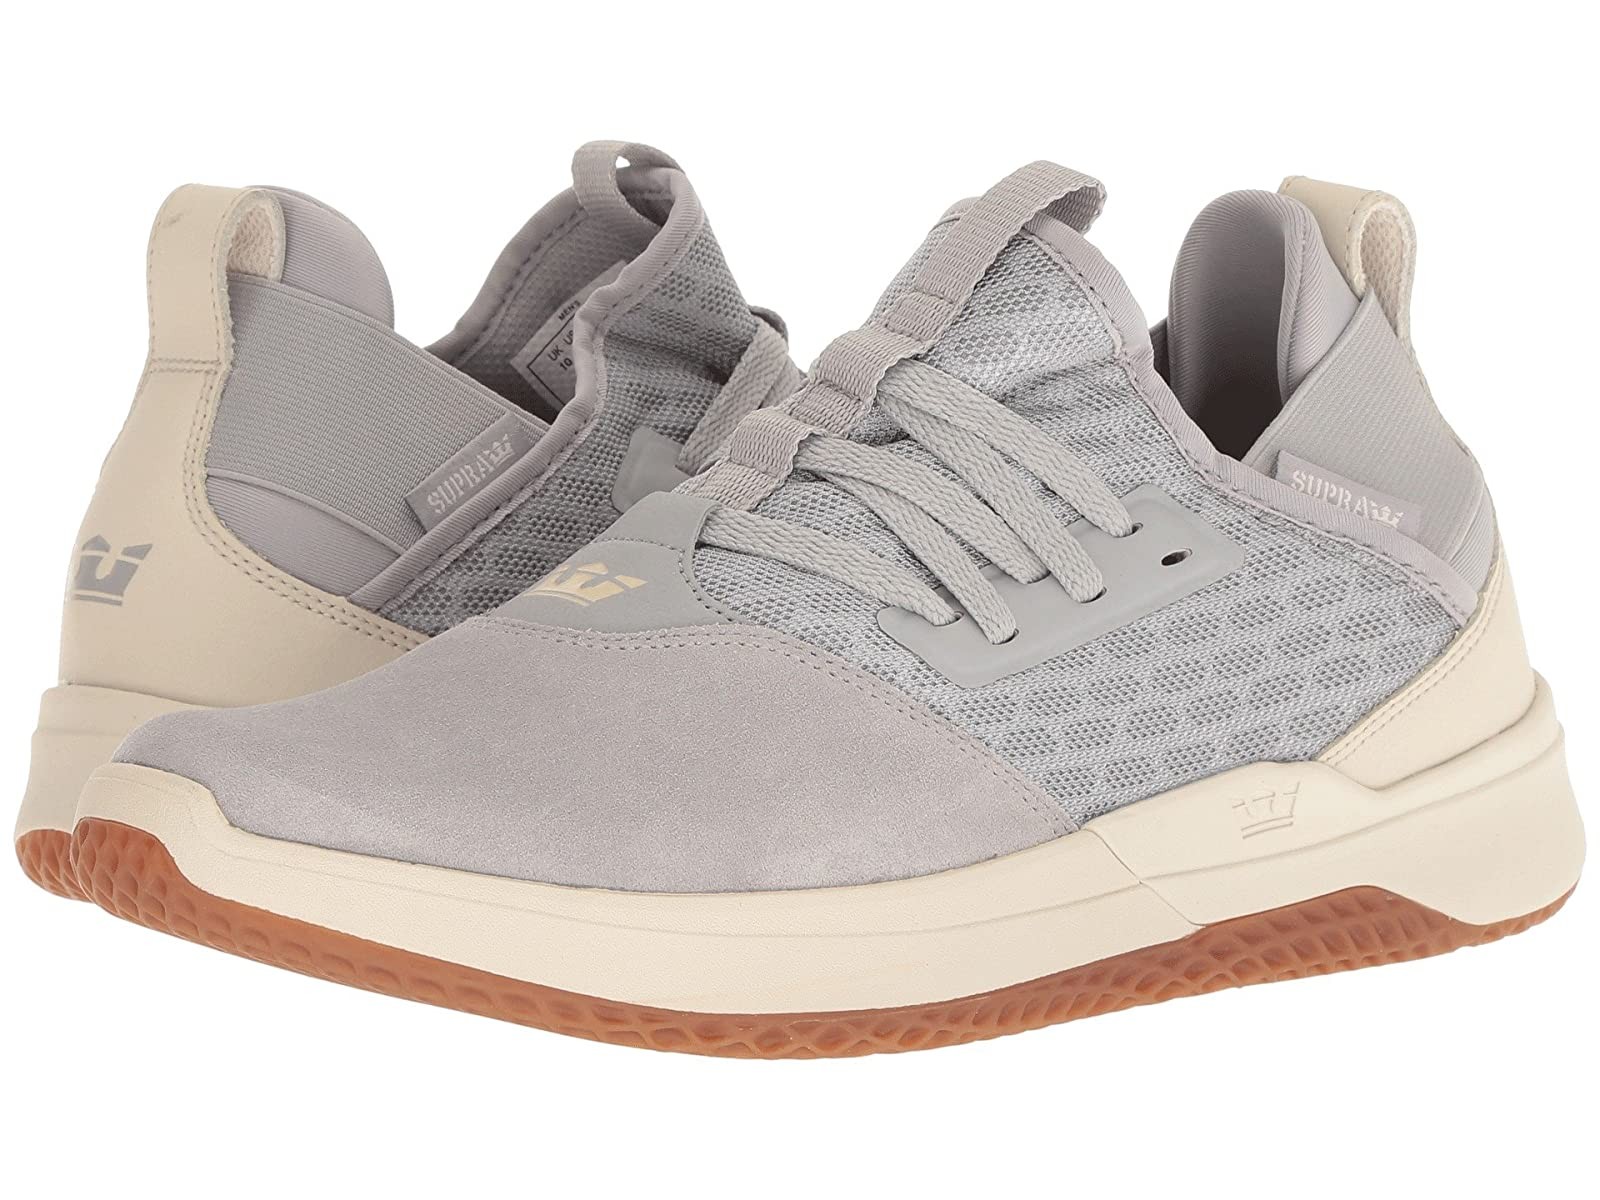 Supra TitaniumAtmospheric grades have affordable shoes